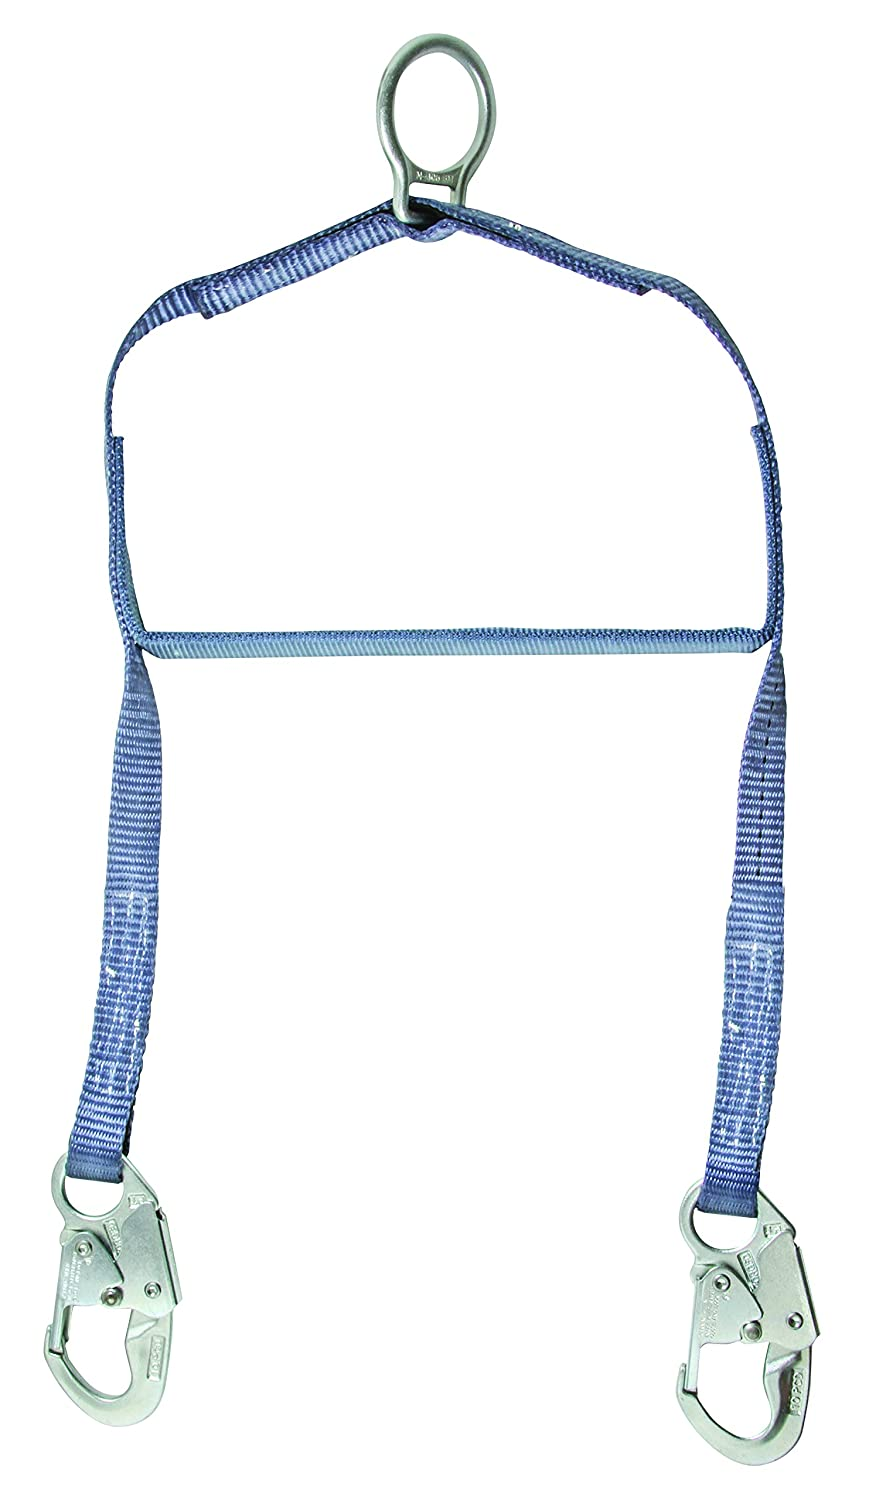 FallTech 8208 Confined Space Retrieval Yoke with 2 Steel Snap Hooks and Connecting Ring, Jacketed Aluminum Spanner Bar, 24' L x 12' W, Blue 24 L x 12 W